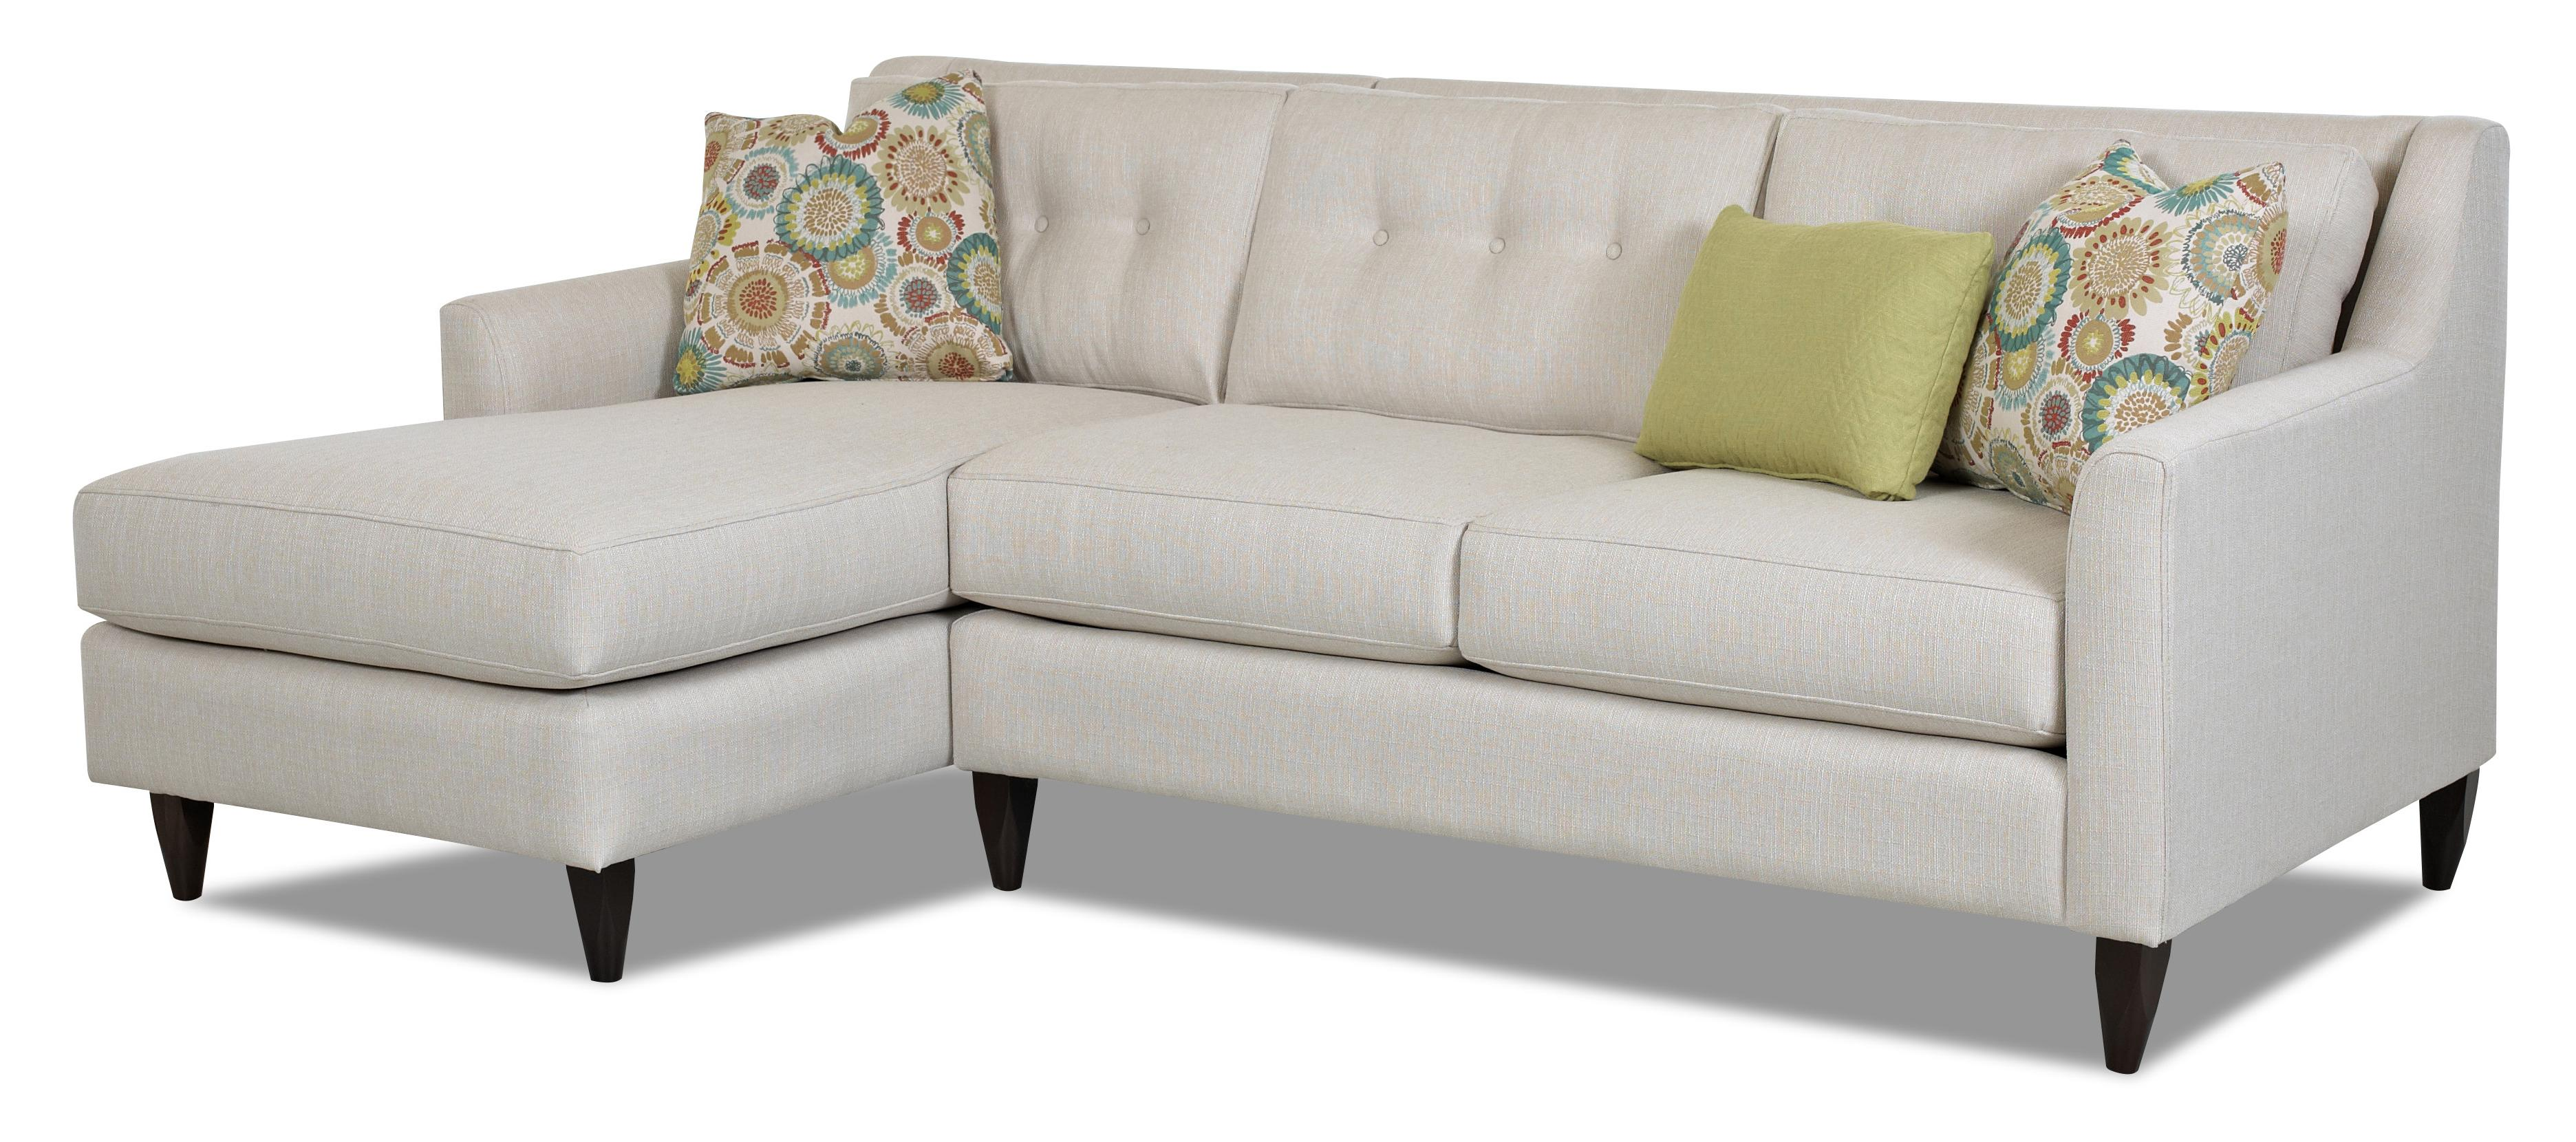 contemporary sectional sofas with chaise photo - 6